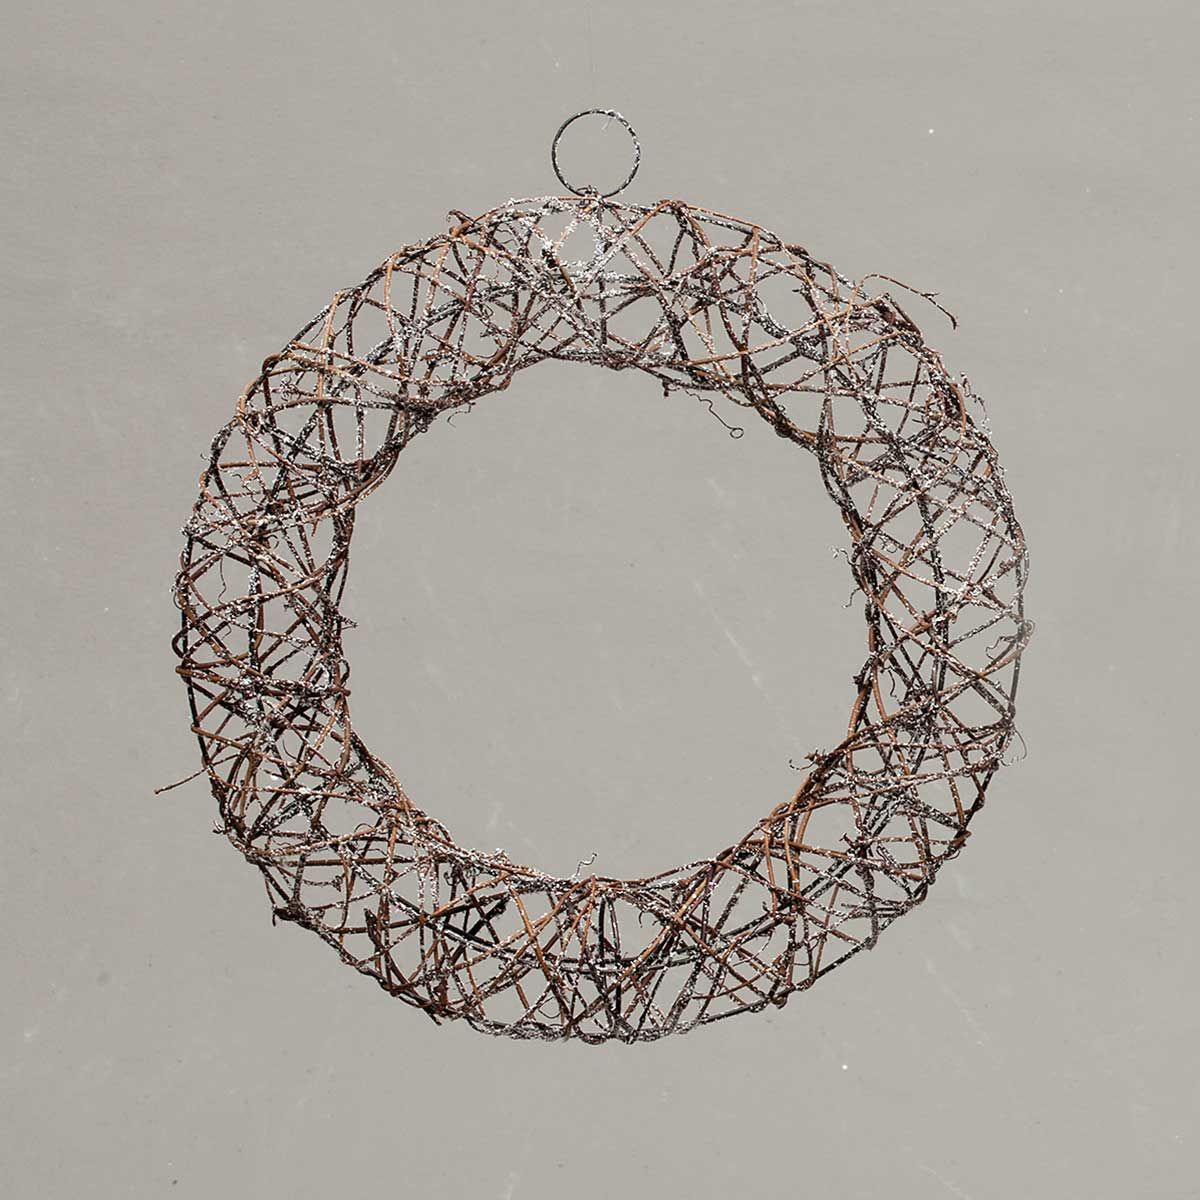 TWIG WREATH WITH SNOW